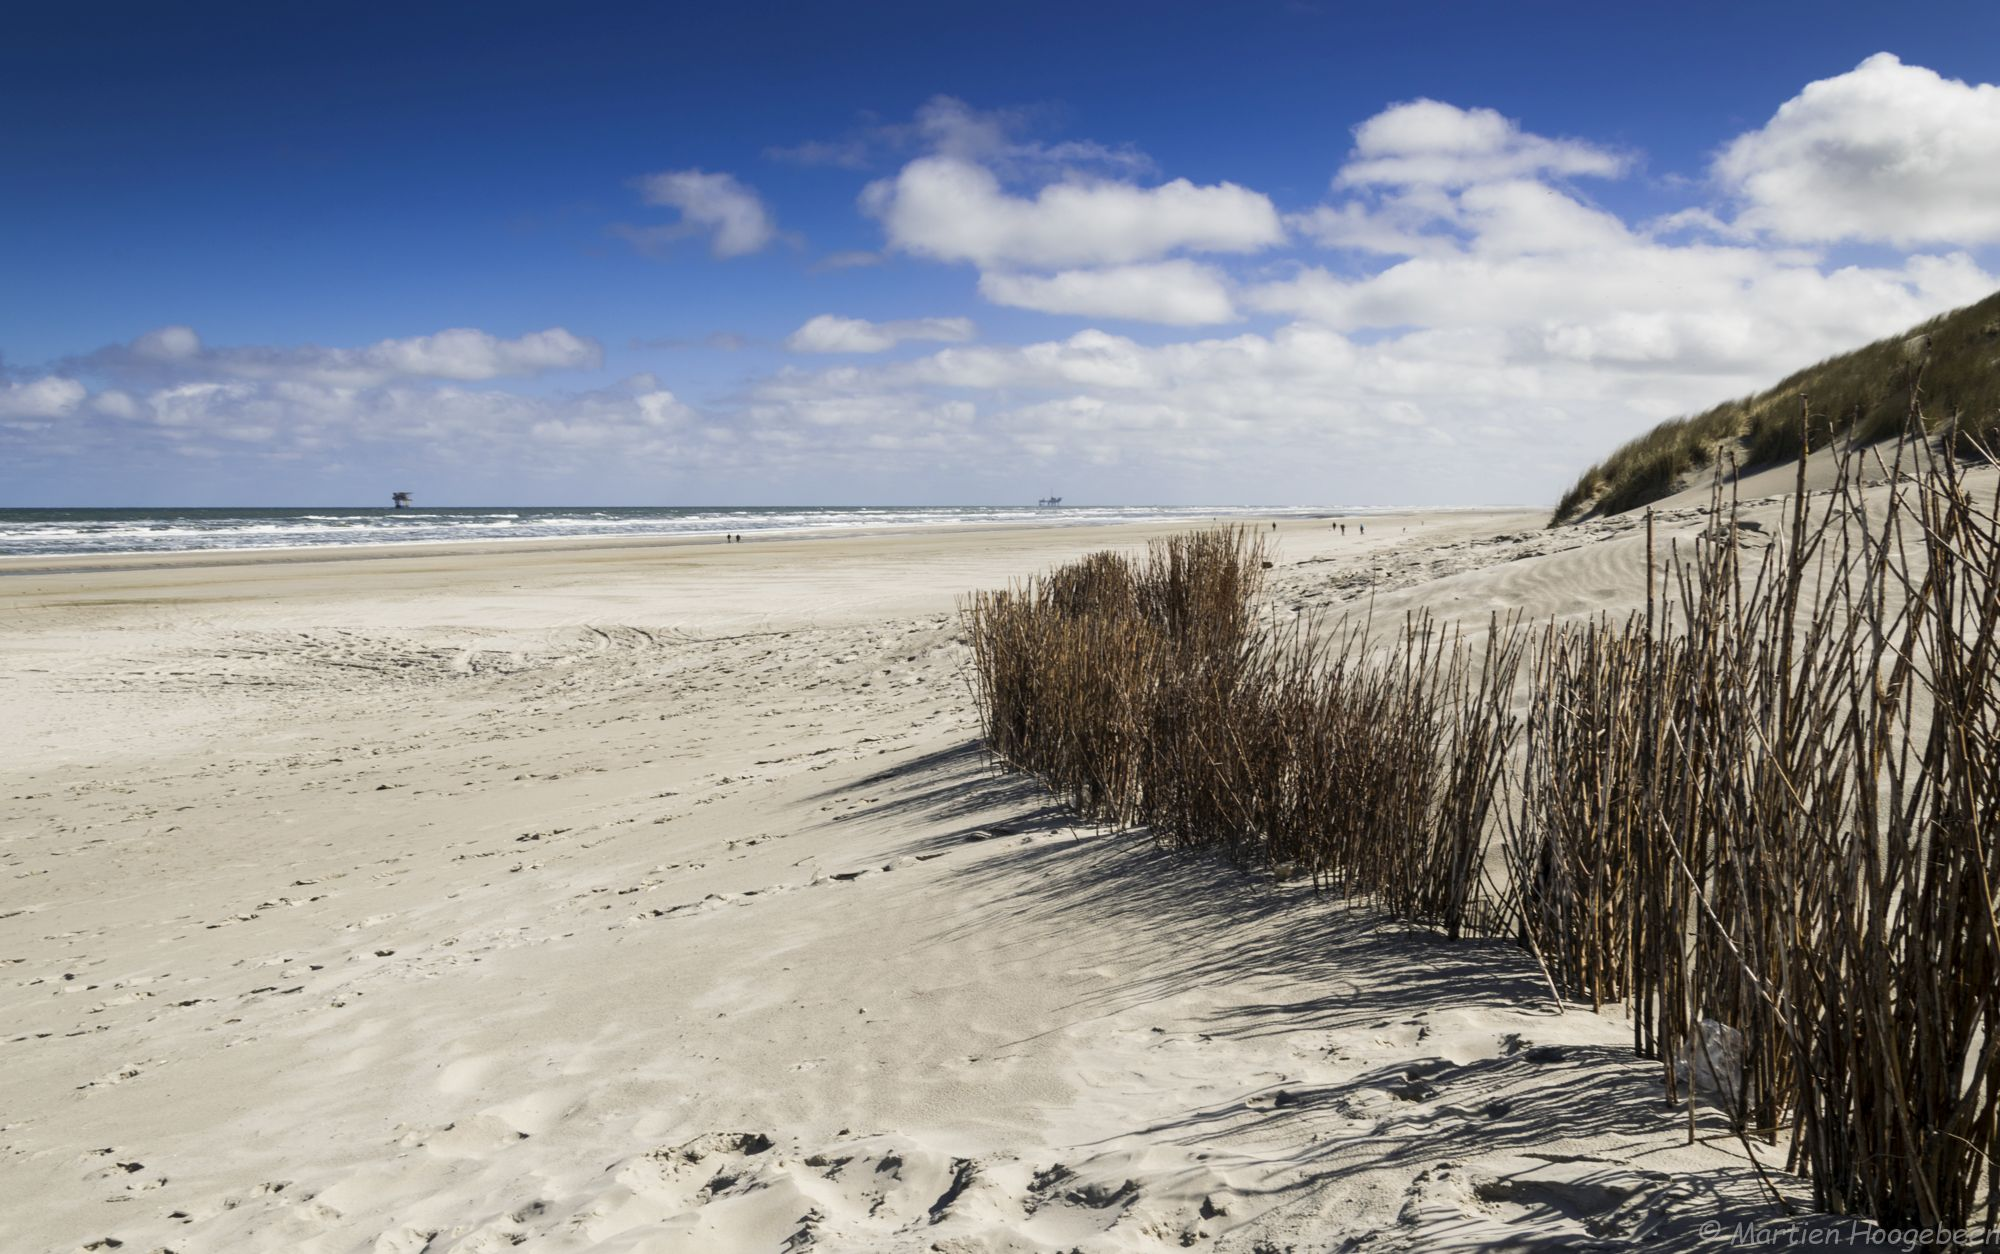 Paal 17, Ameland